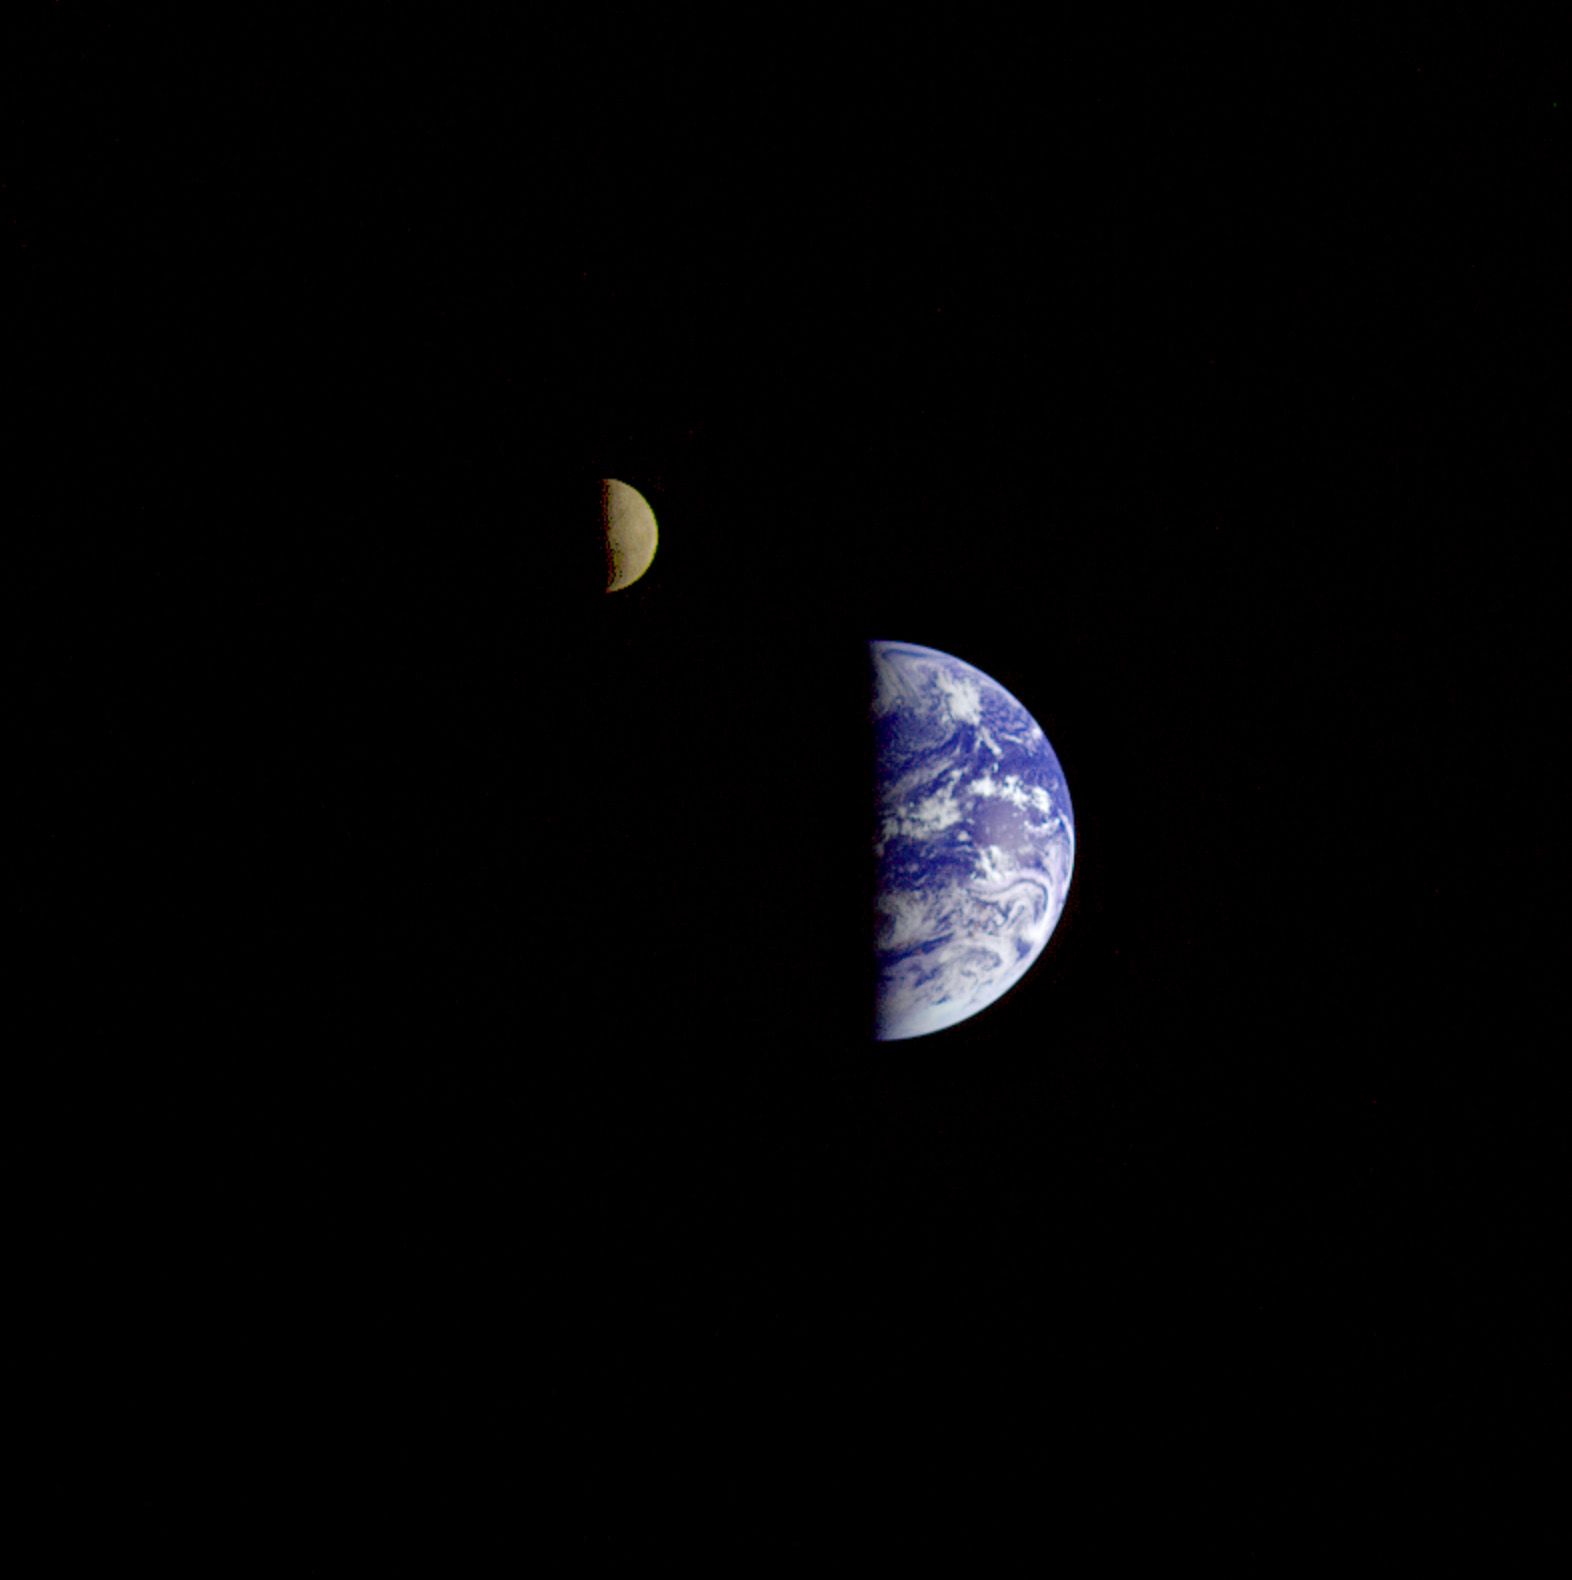 voyager 1 view of earth - photo #17